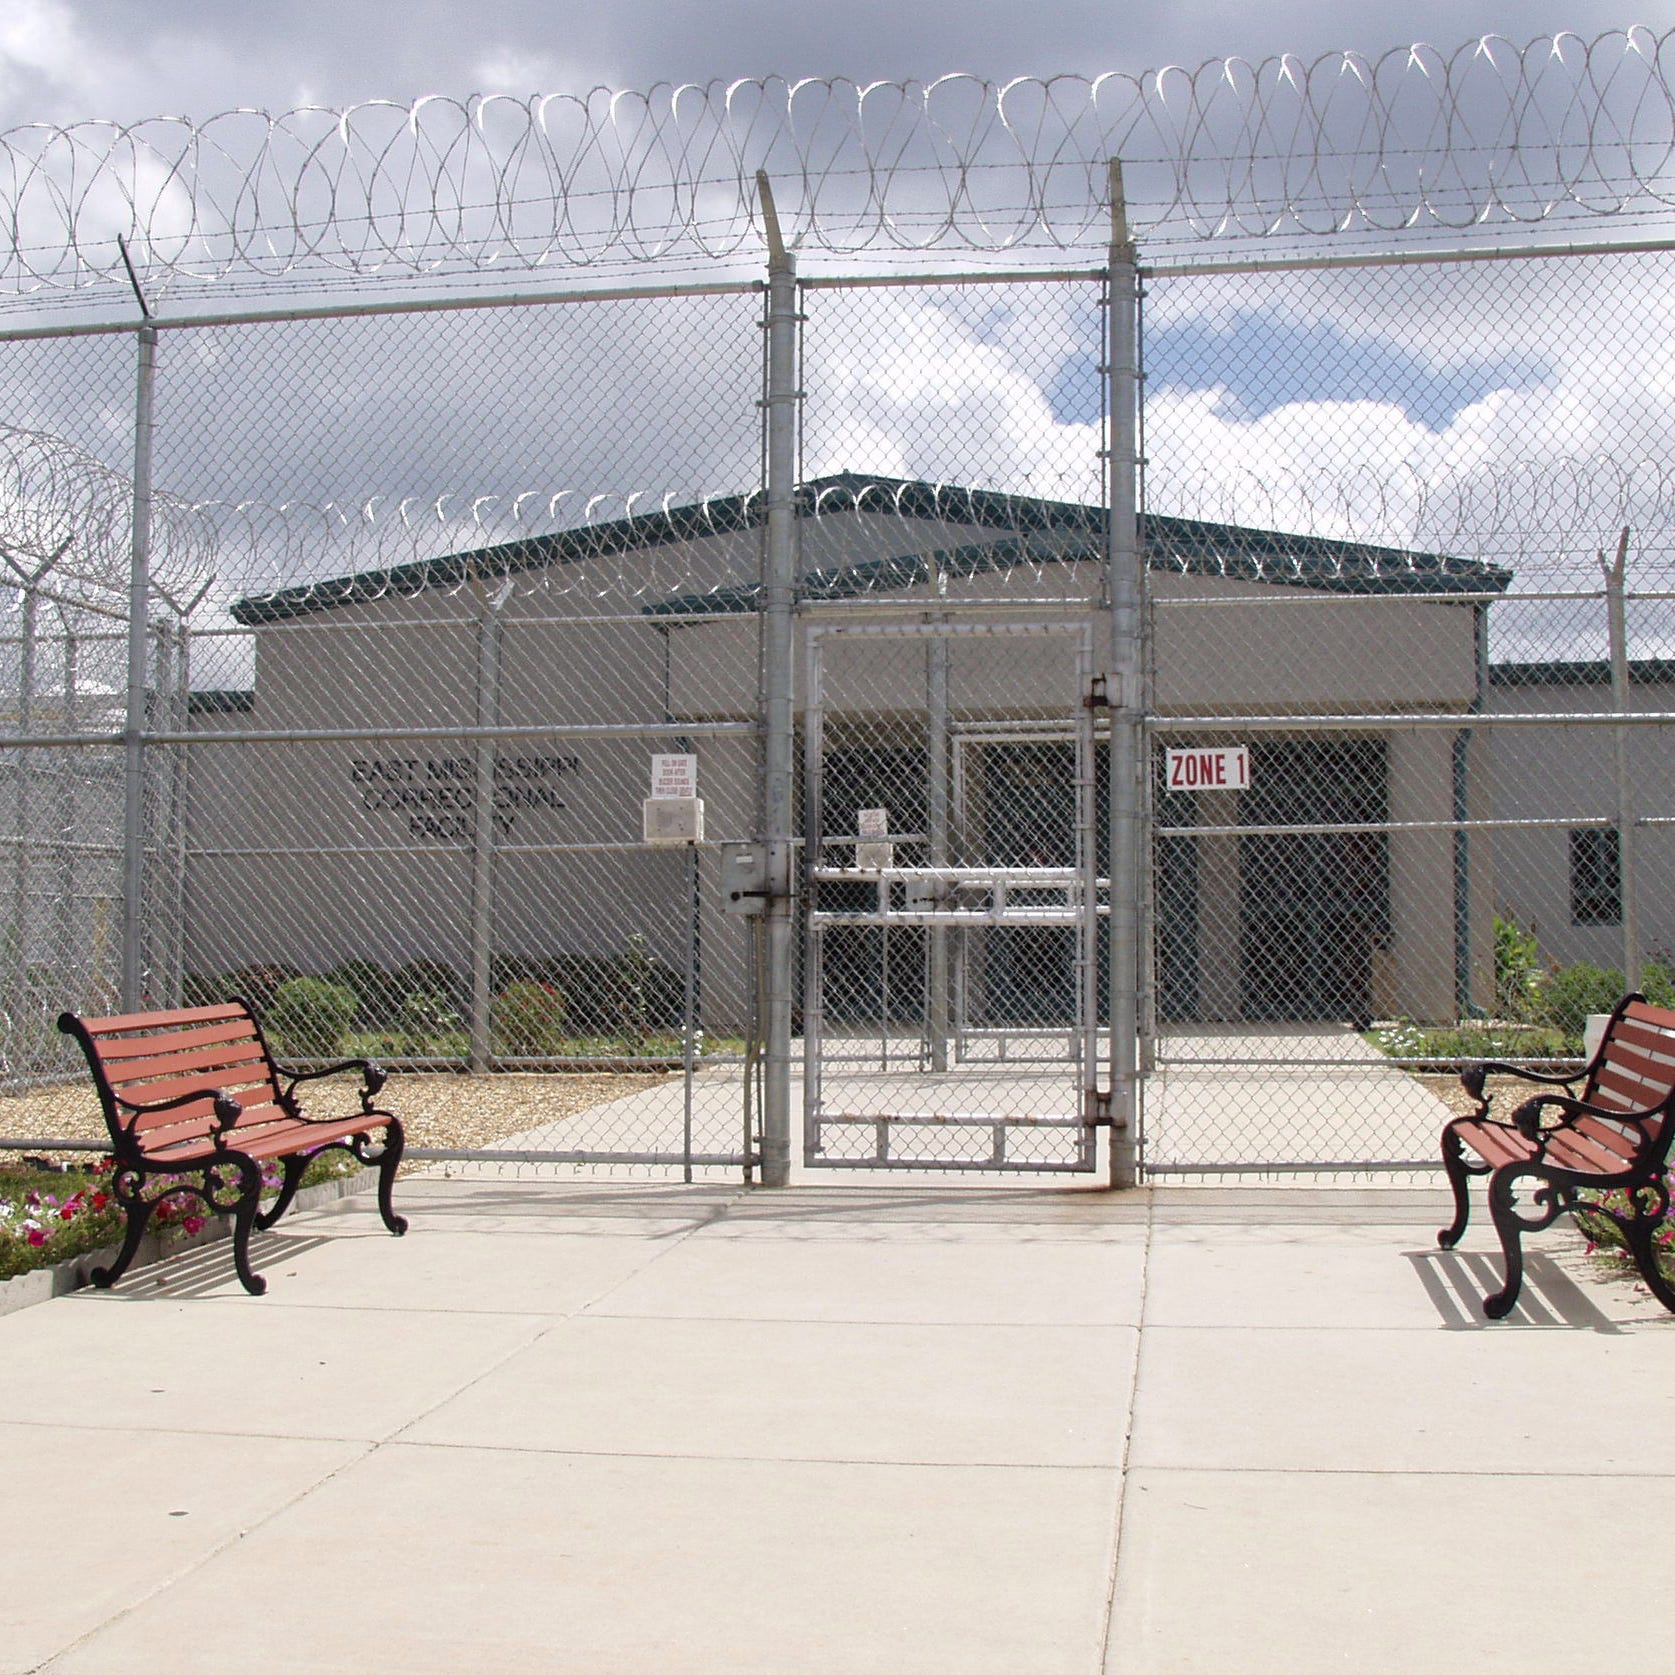 Mississippi prison inmate dies in hanging